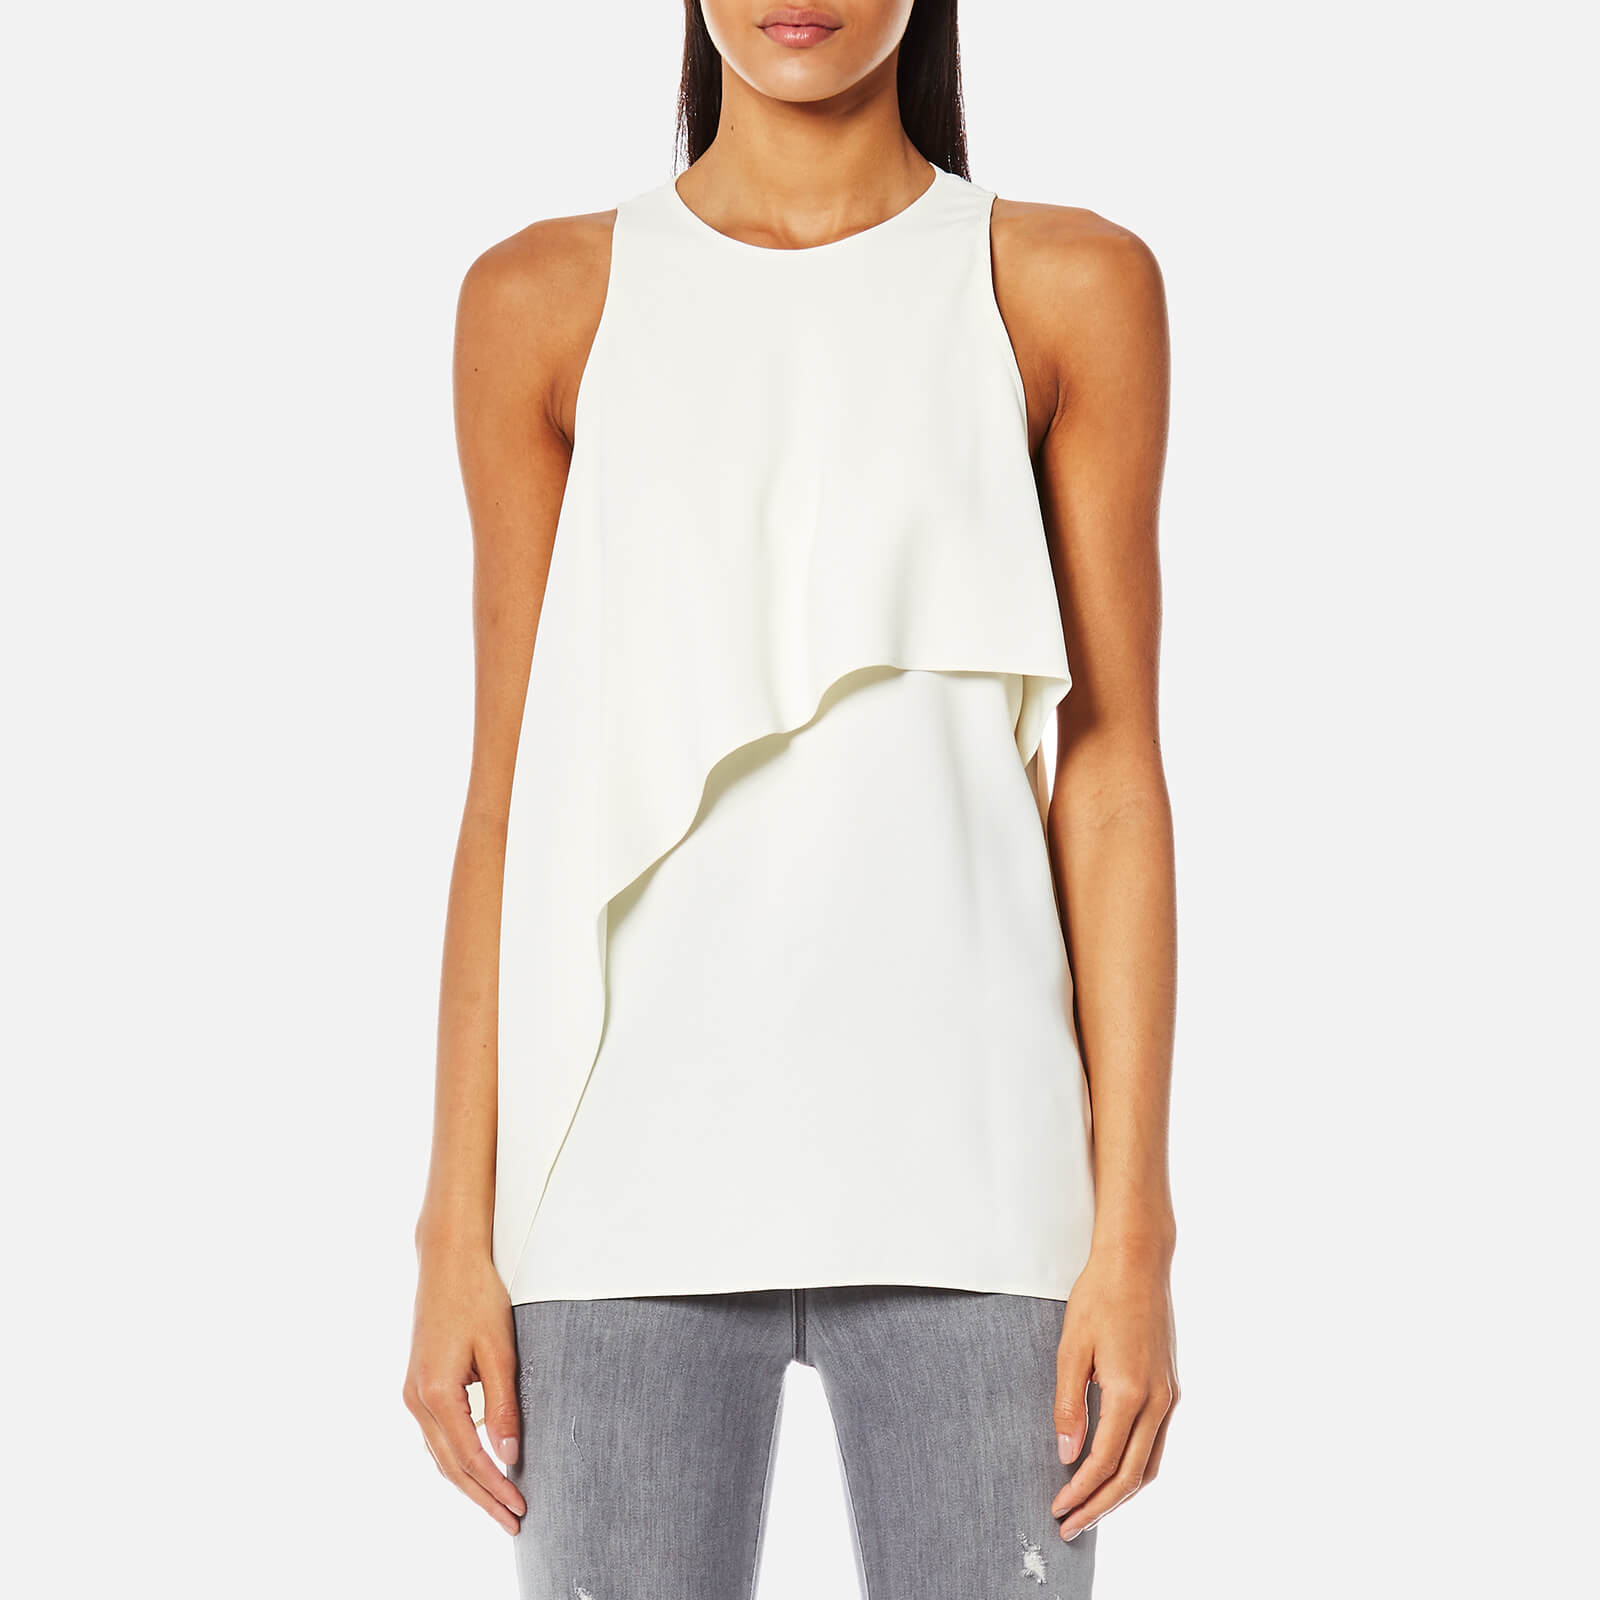 5a805d73fe5 Helmut Lang Women's Side Drape Tank Satin Top - White - Free UK Delivery  over £50